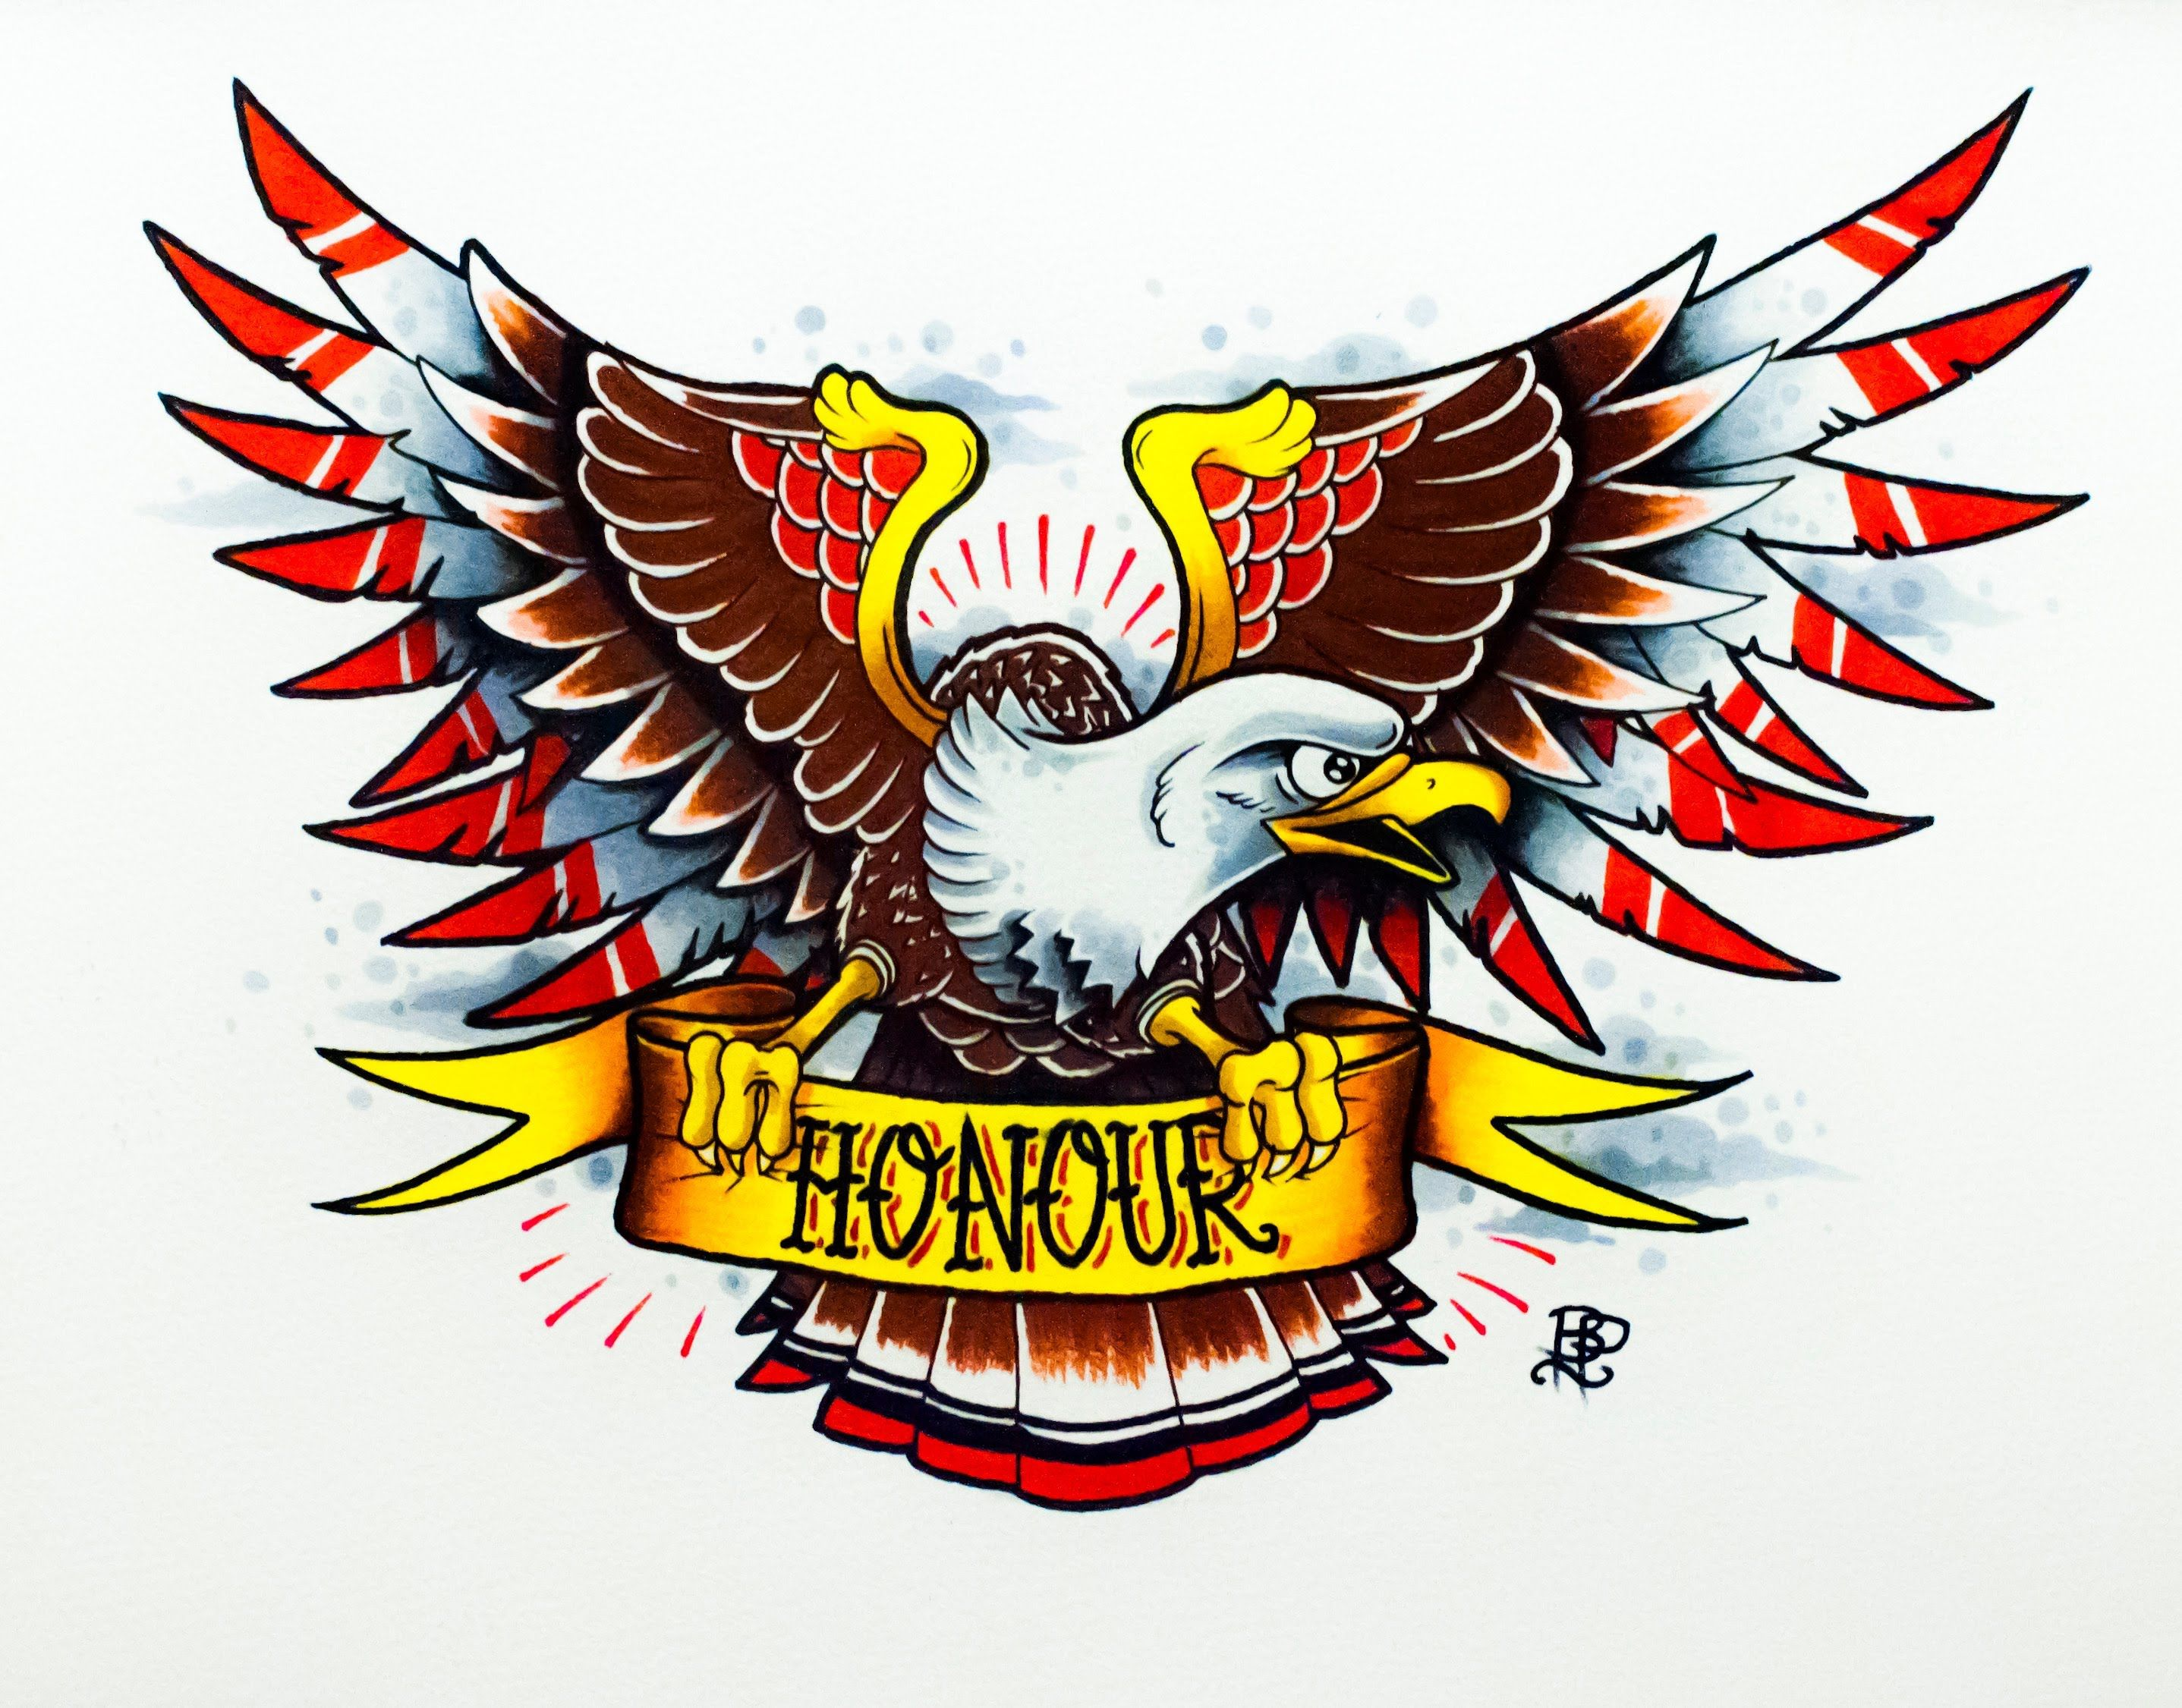 American eagle tattoos high quality photos and flash - How To Draw An Old School Eagle Tattoo Design By Thebrokenpuppet